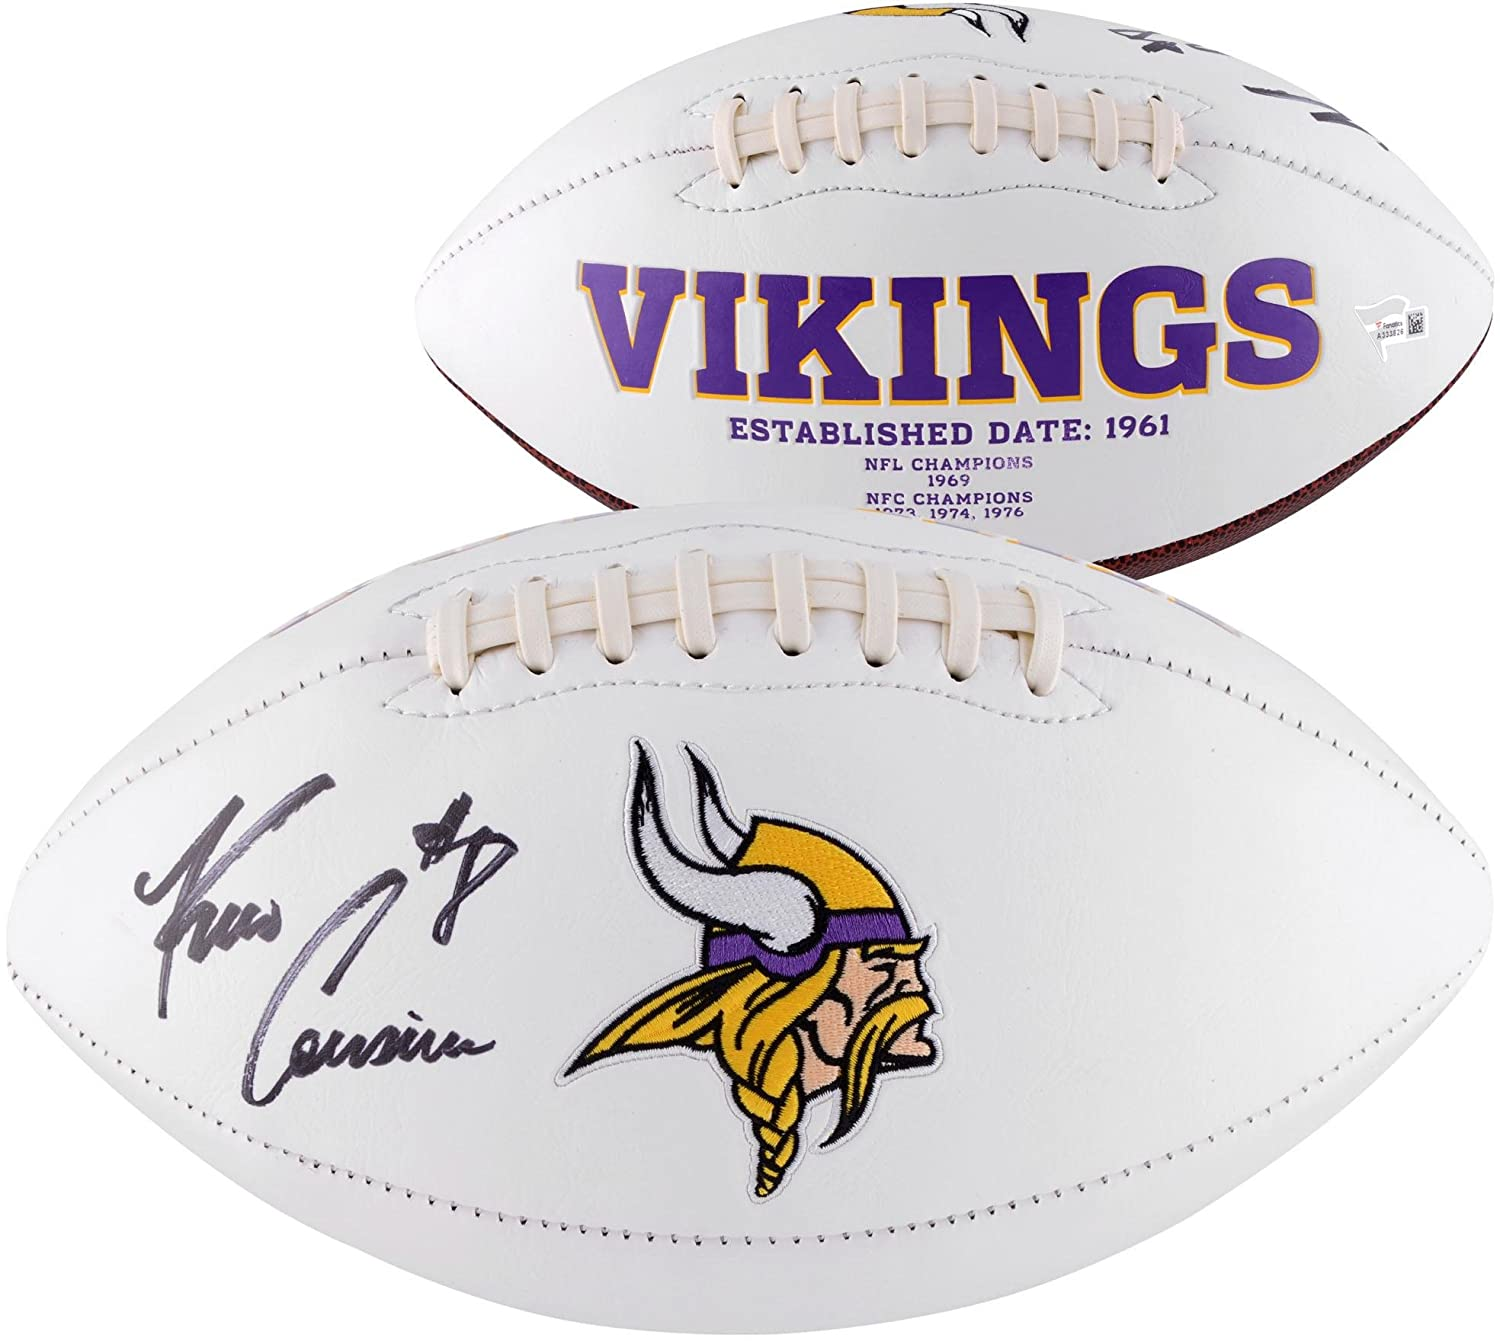 Kirk Cousins Minnesota Vikings Autographed White Panel Football - Fanatics Authentic Certified - Autographed Footballs